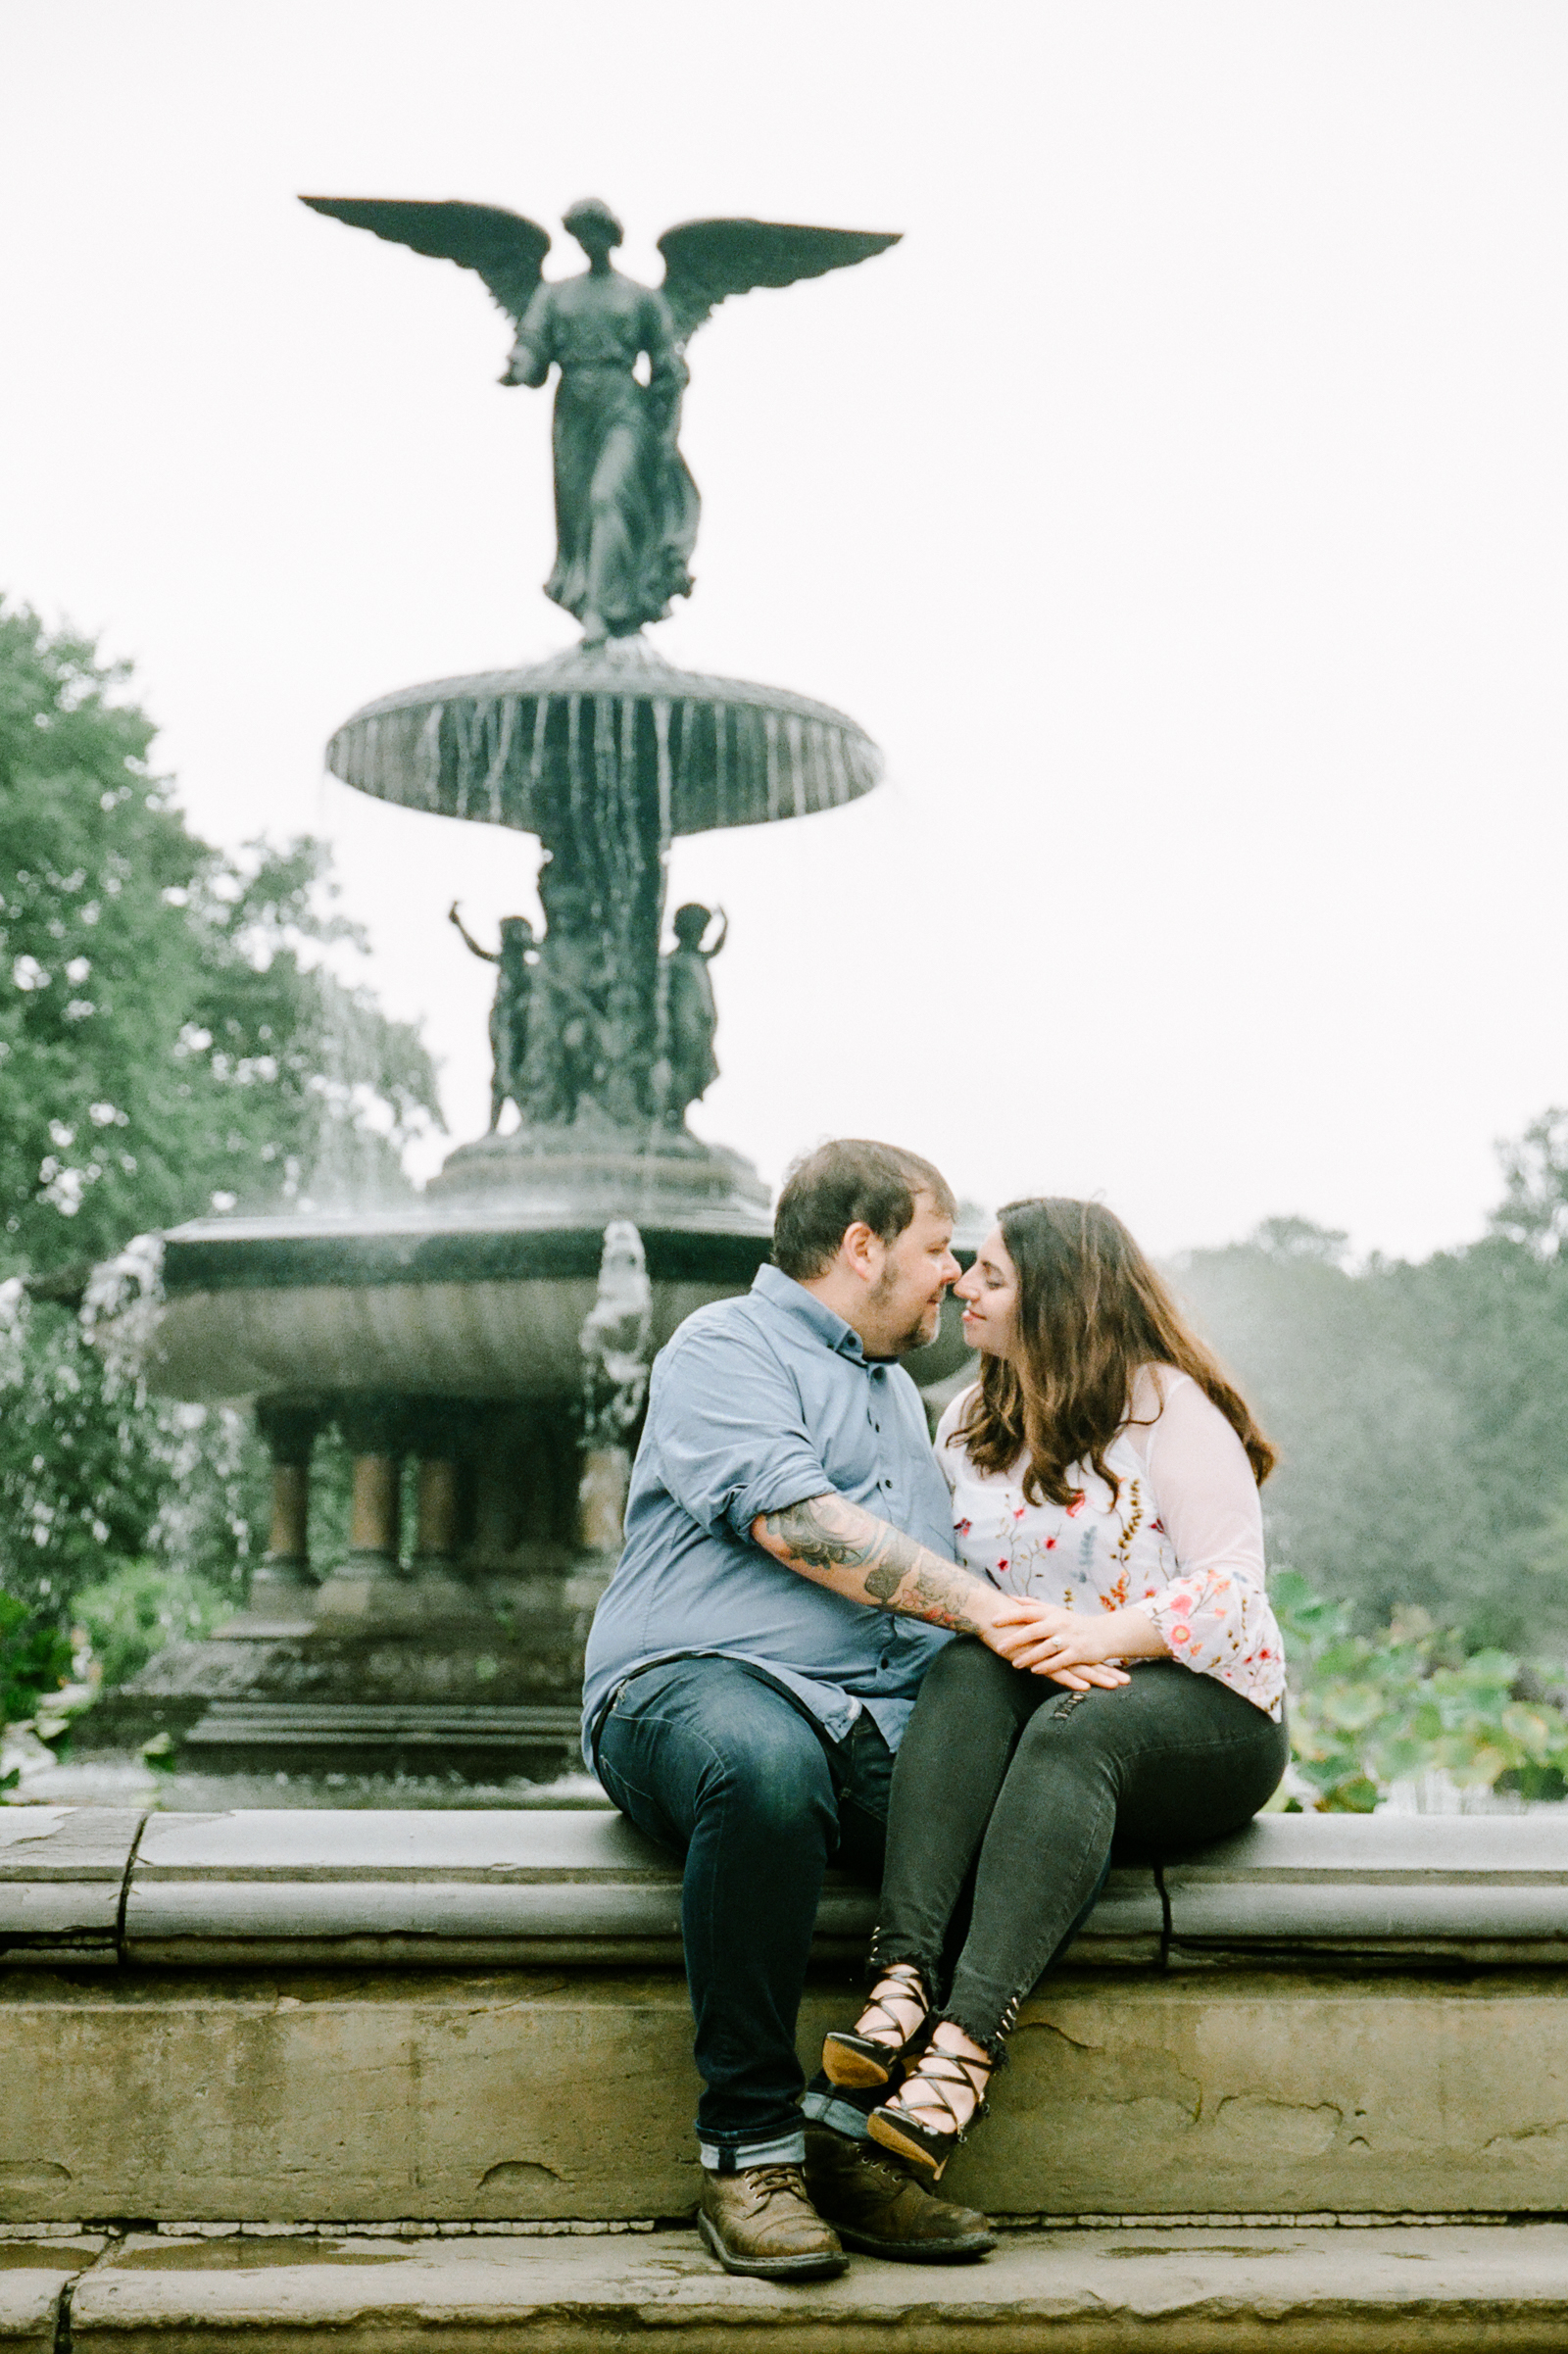 Central-Park-NYC-Engagement-Session-film-photography-32.jpg